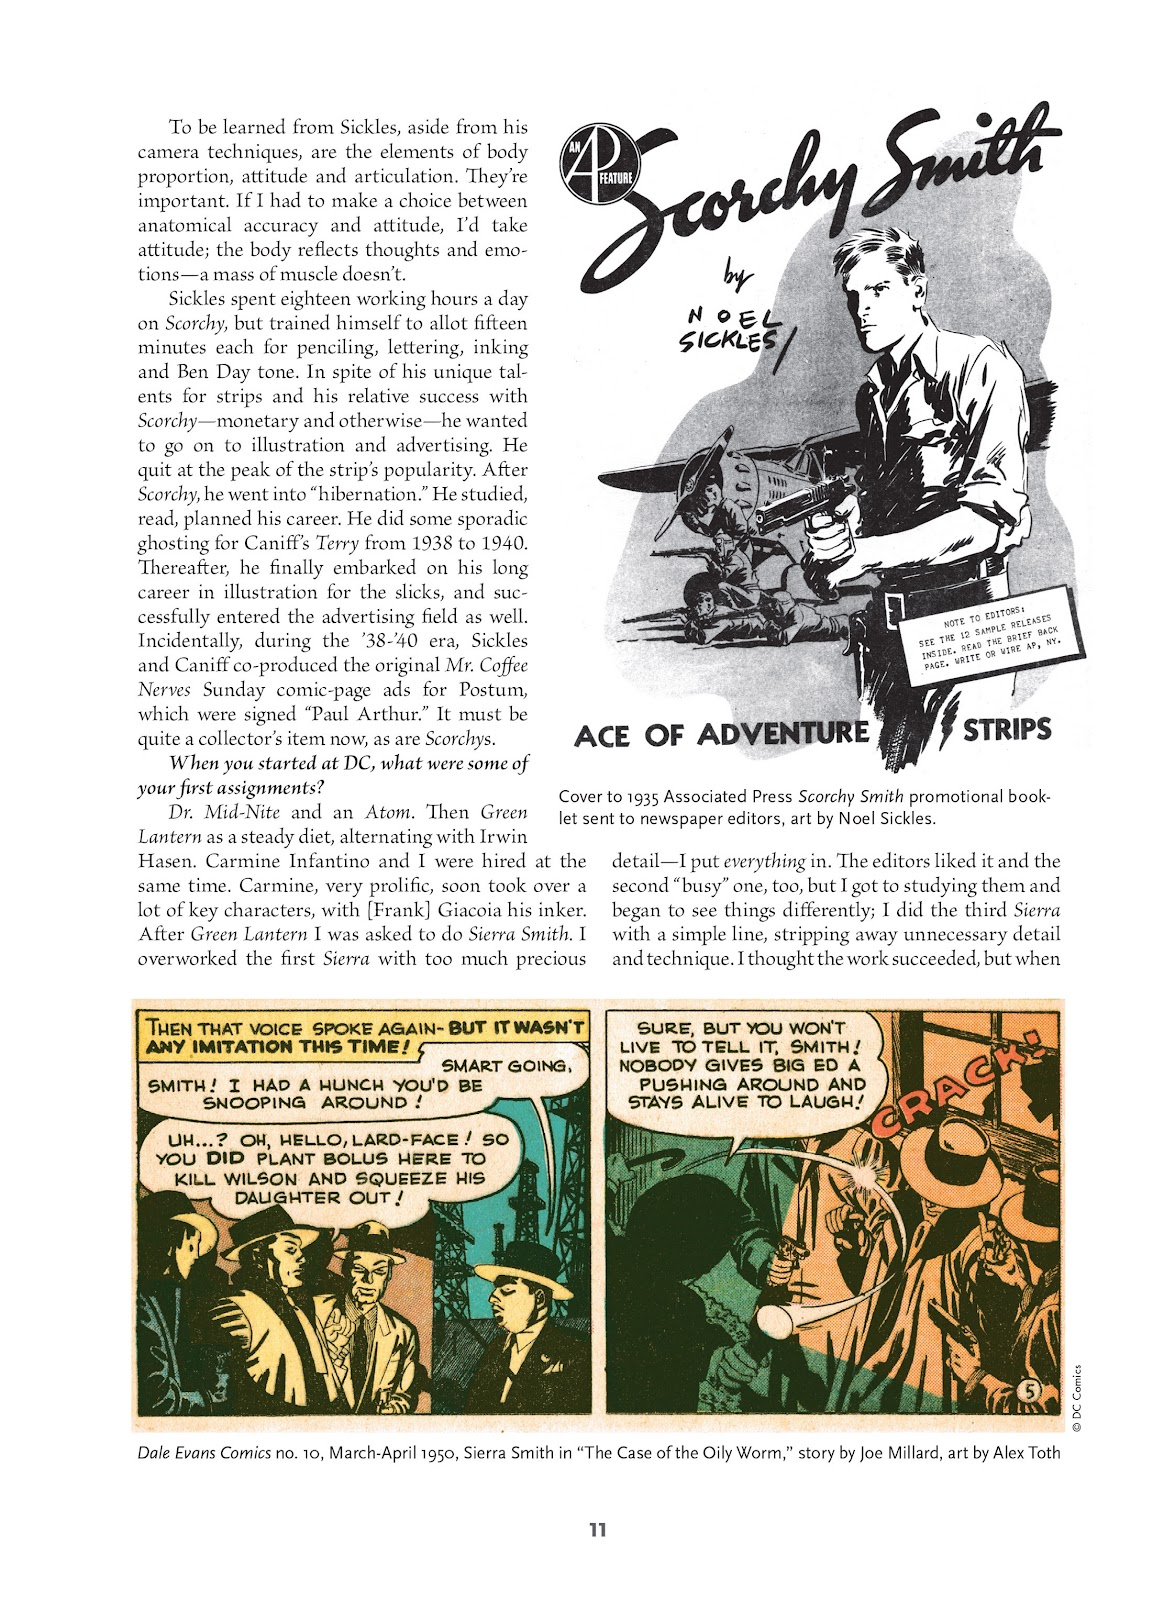 Read online Setting the Standard: Comics by Alex Toth 1952-1954 comic -  Issue # TPB (Part 1) - 10